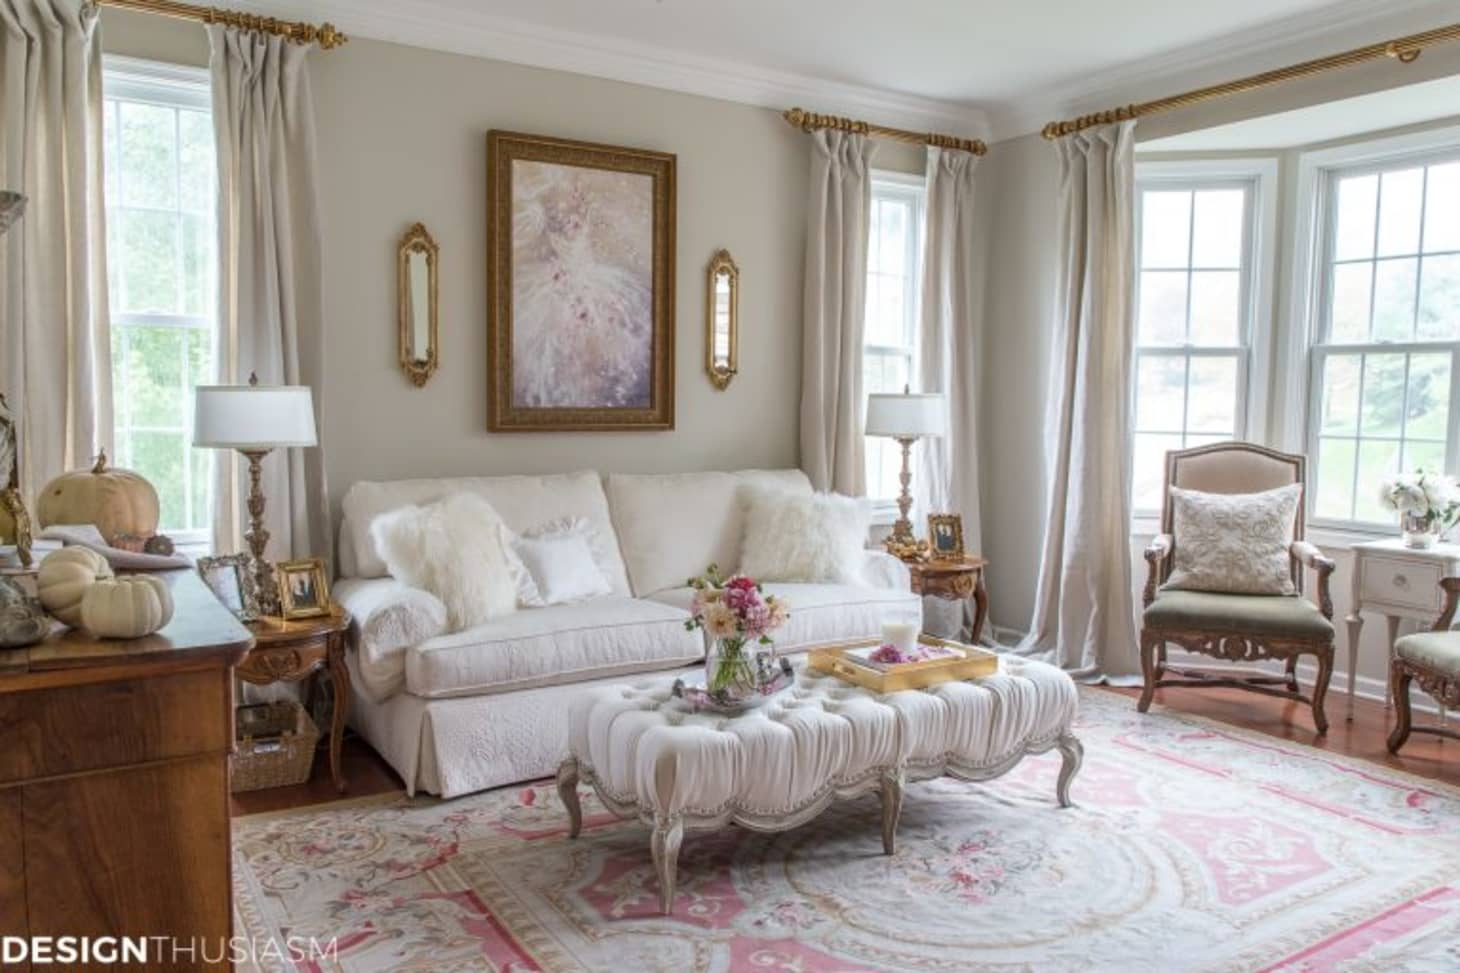 20 Rooms That Will Make You Rethink French Country Decor ...